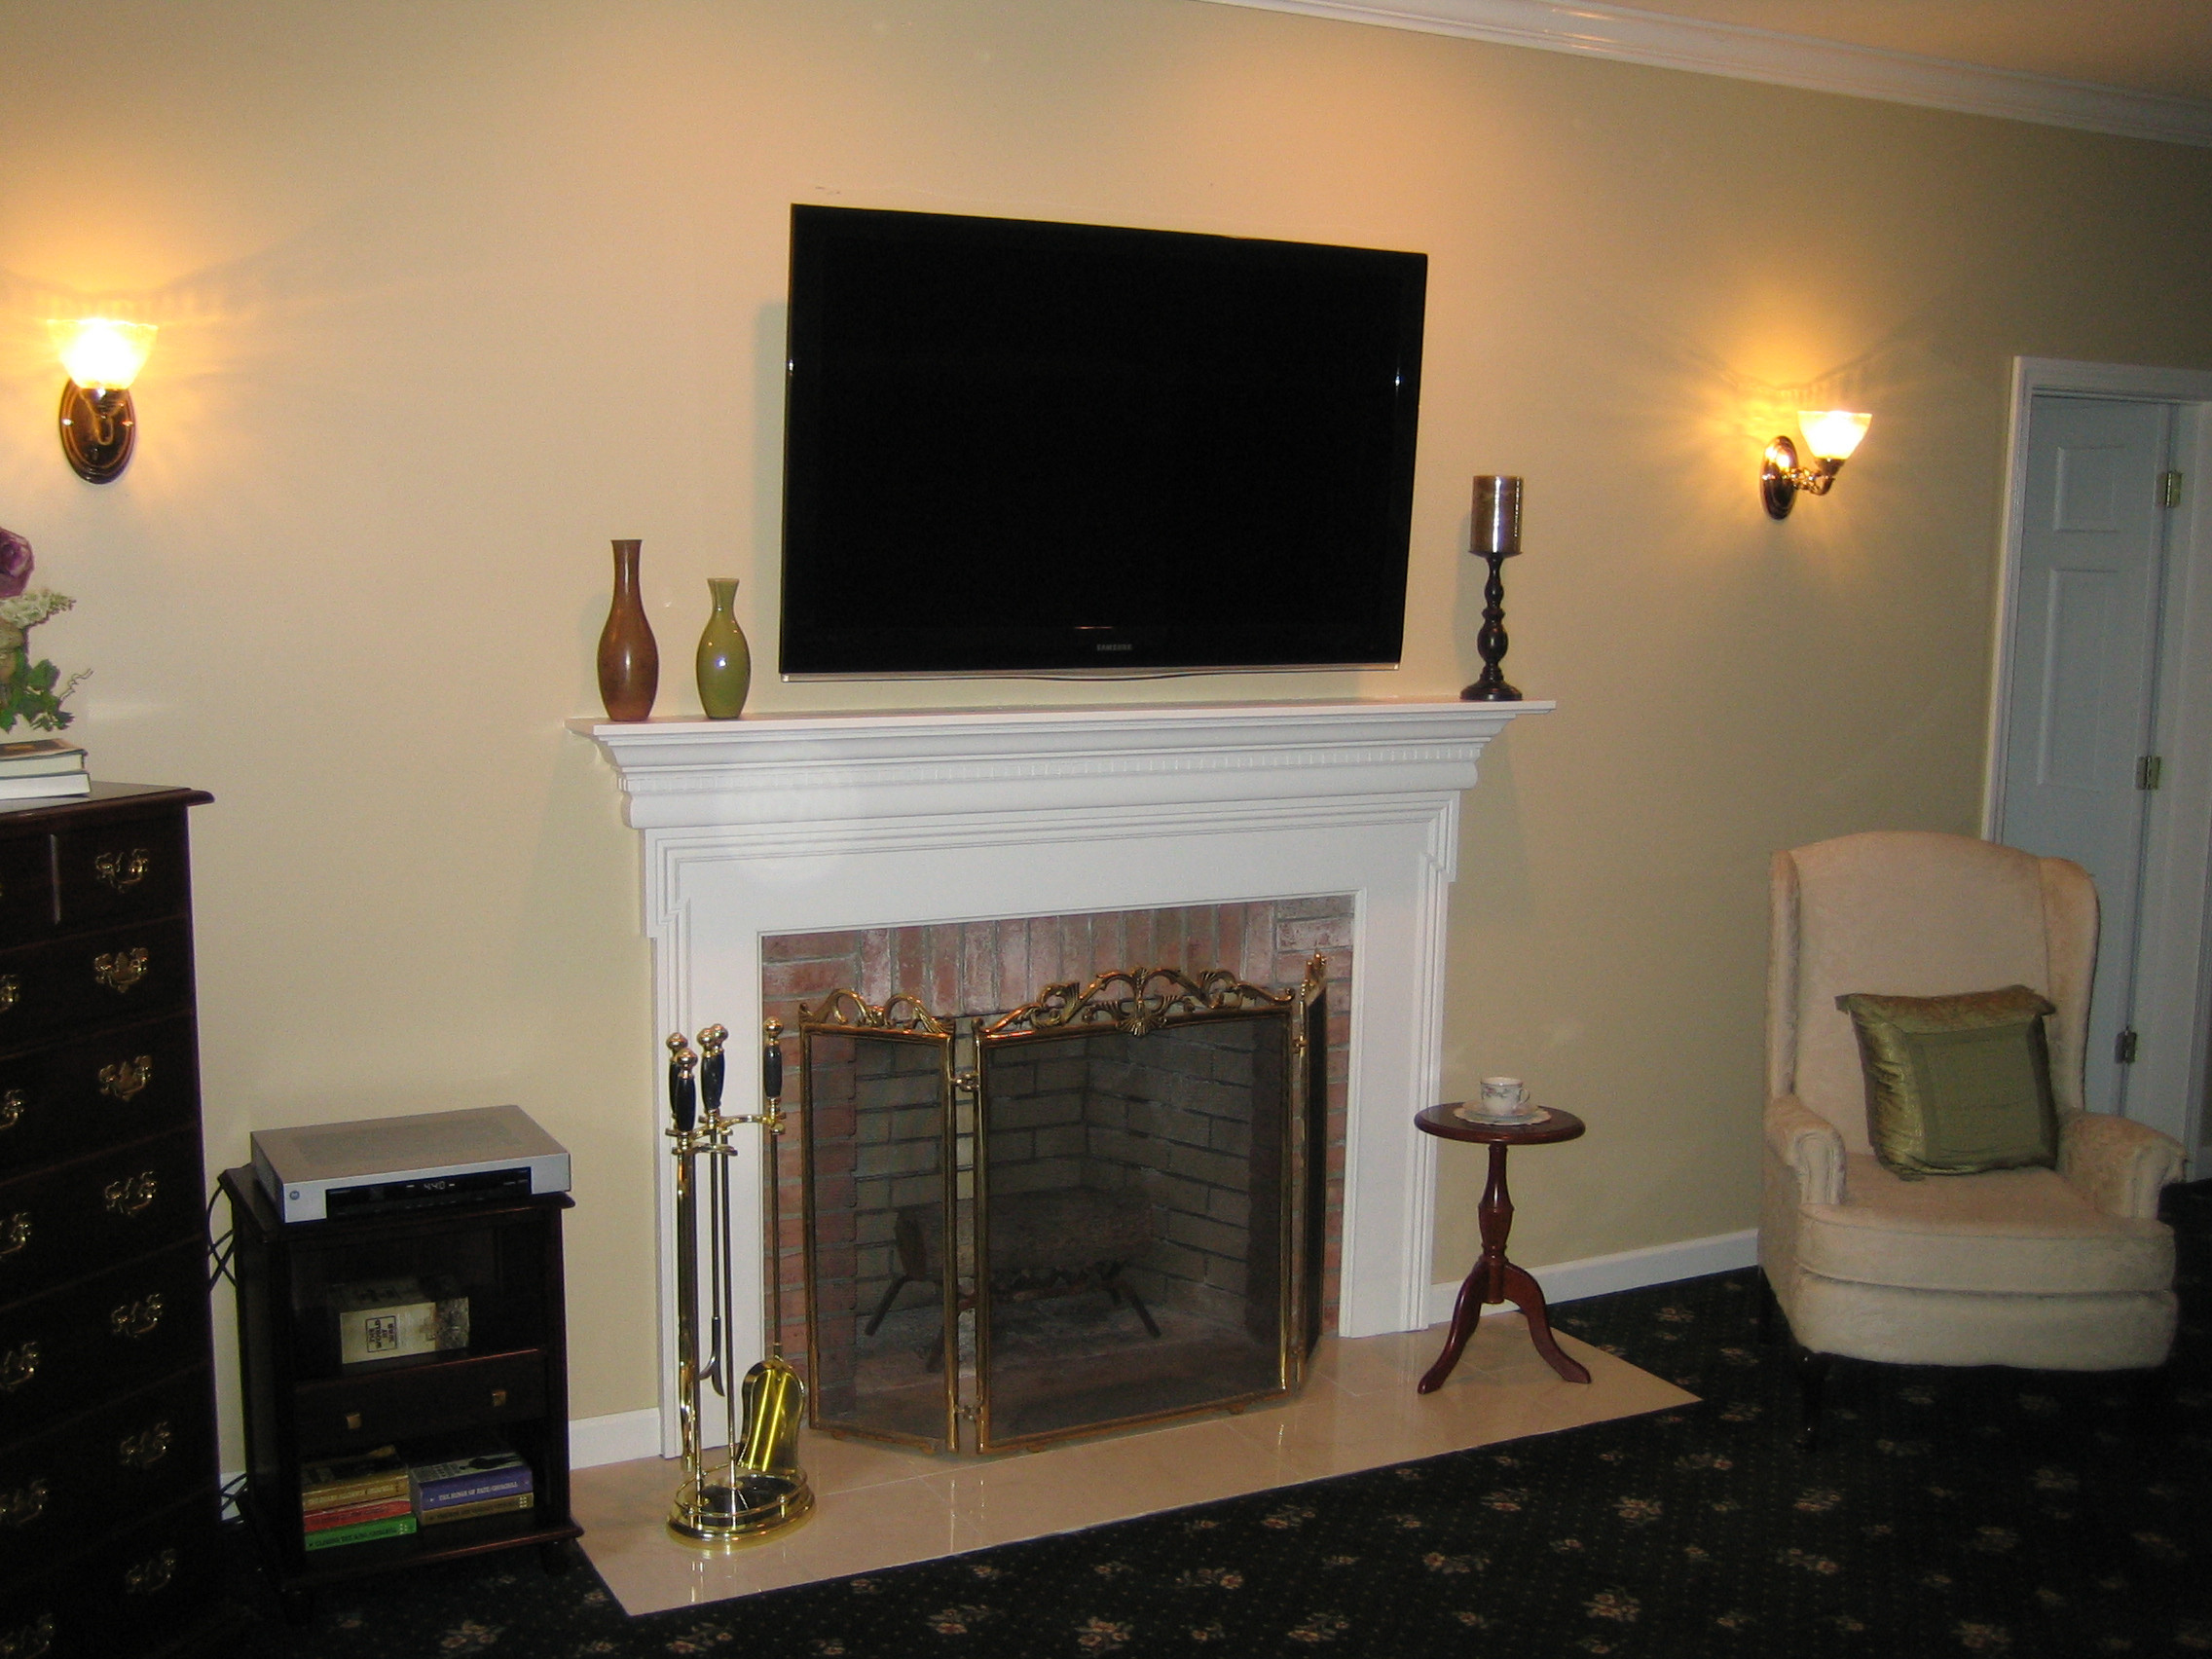 Best ideas about Mounting Tv Above Fireplace . Save or Pin Mounting Tv Fireplace Now.